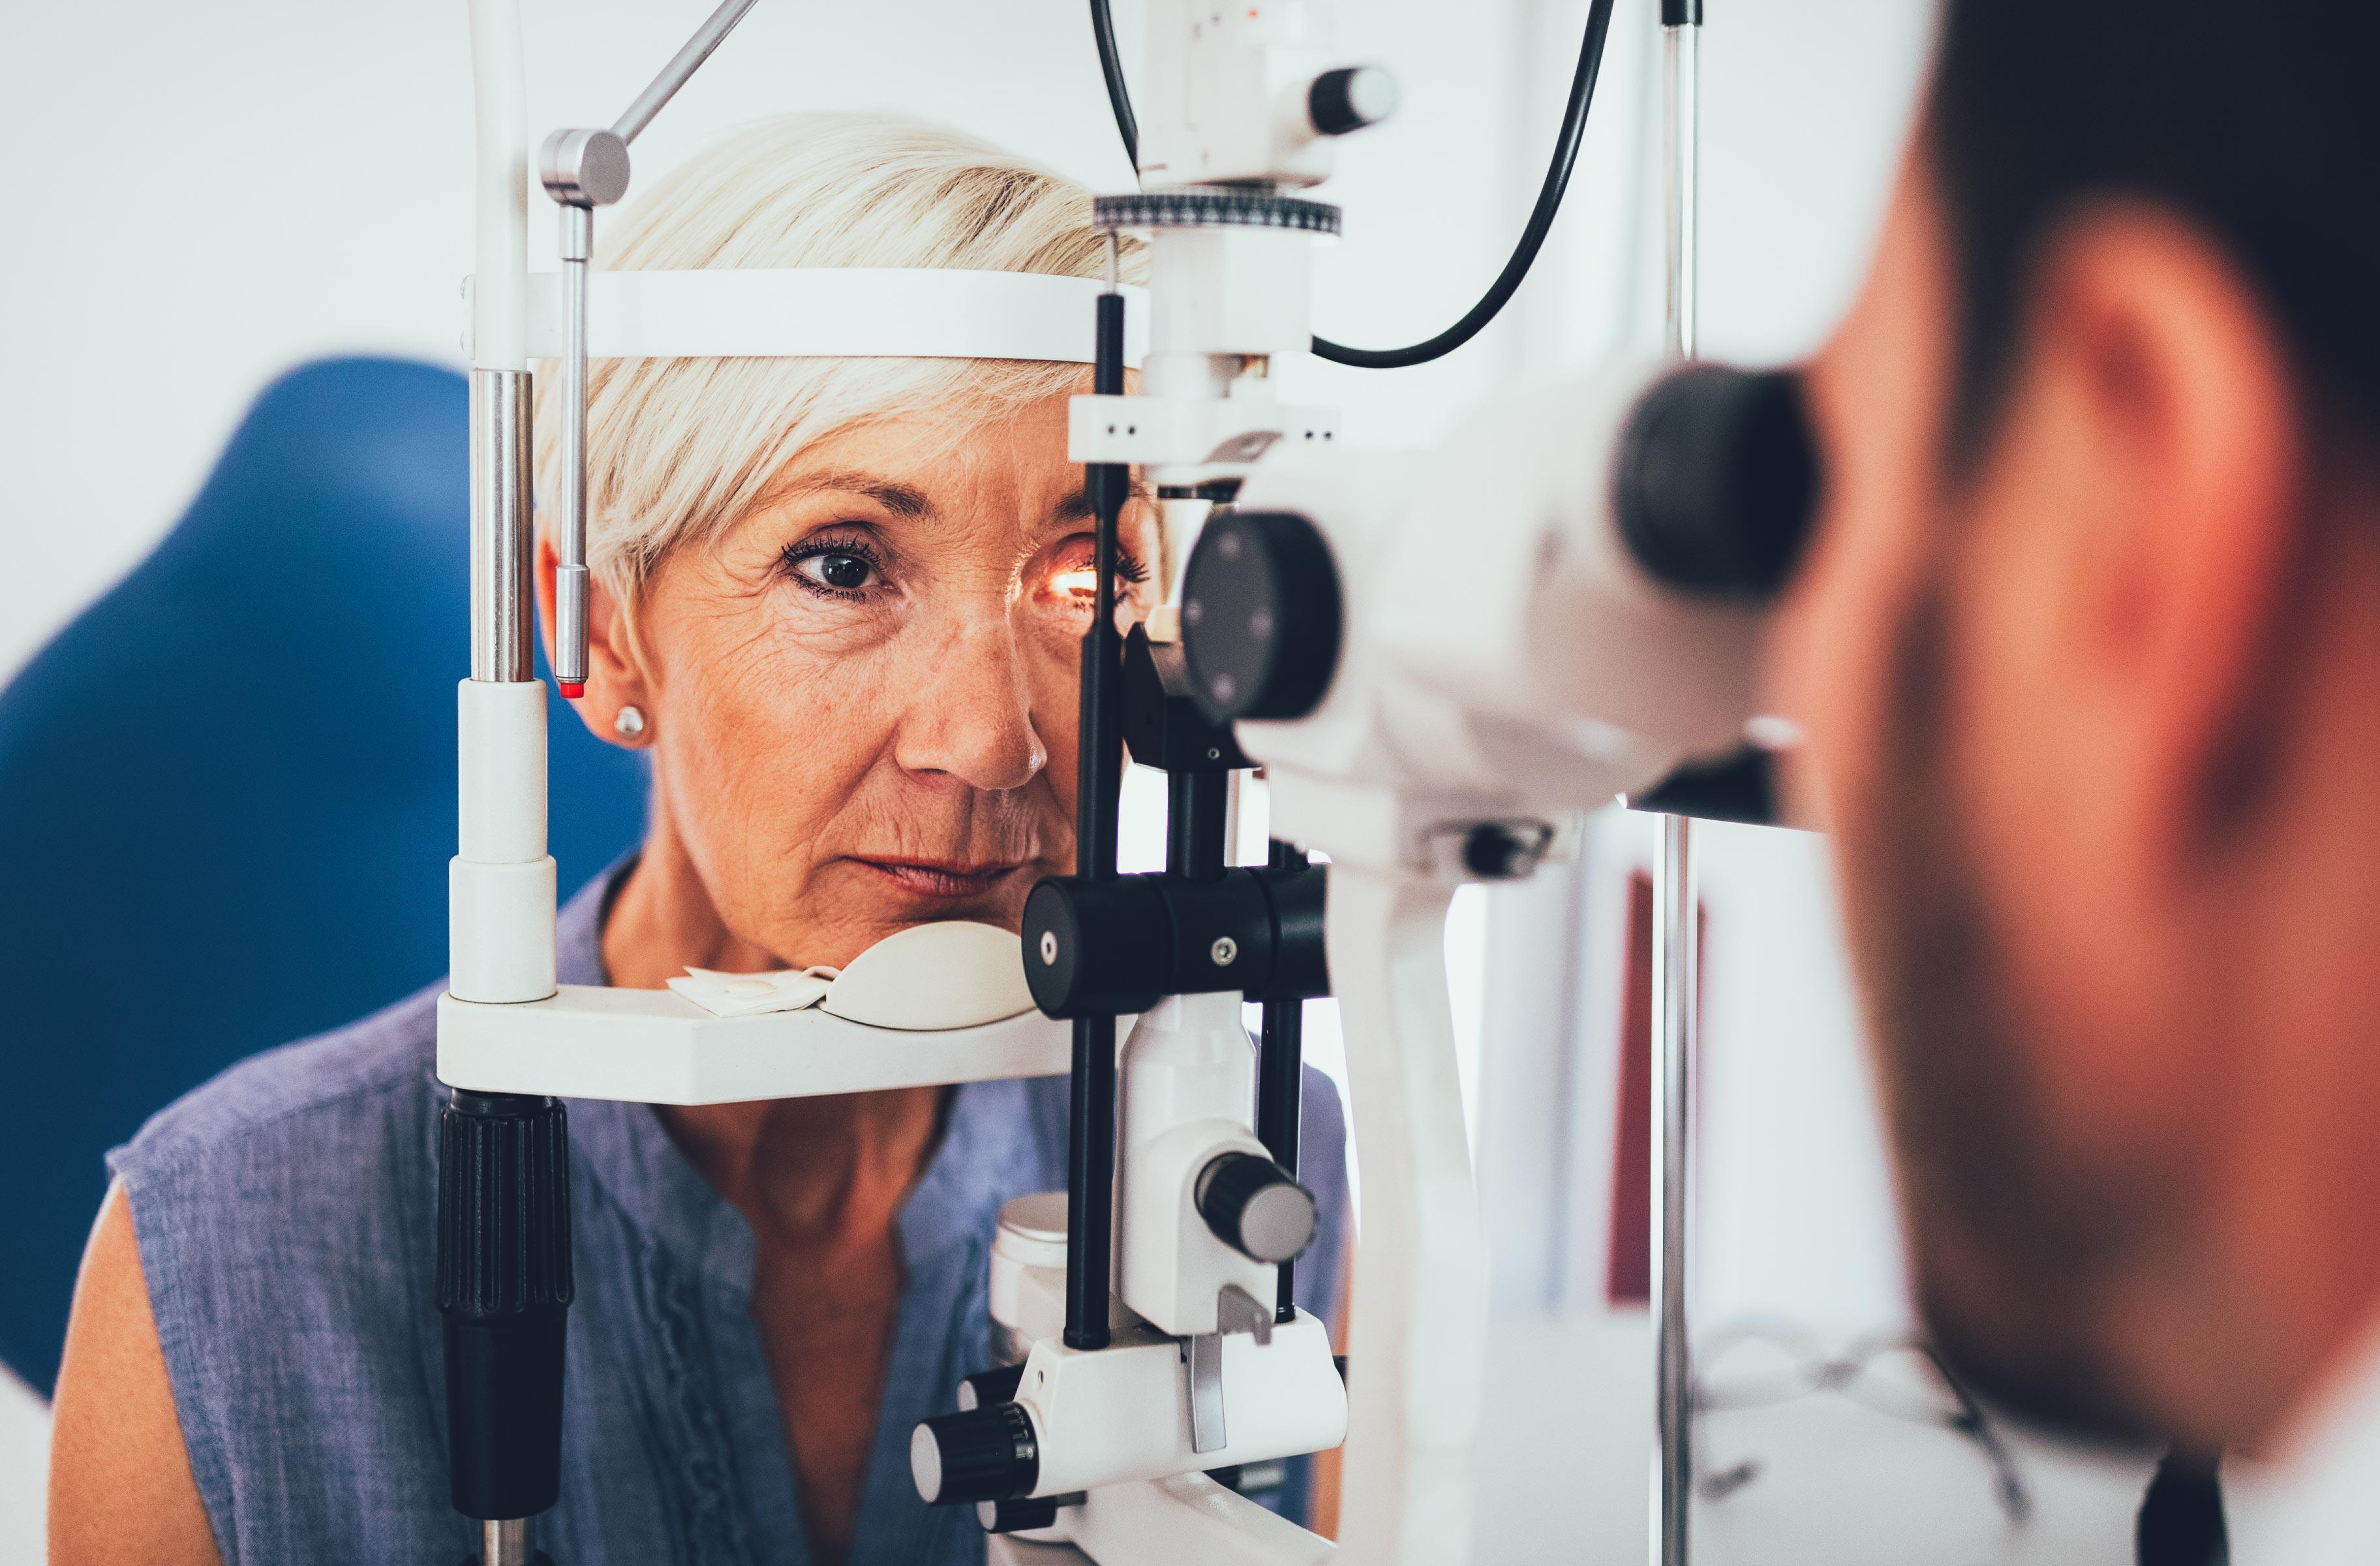 A person who has an eye exam to detect possible glaucoma.